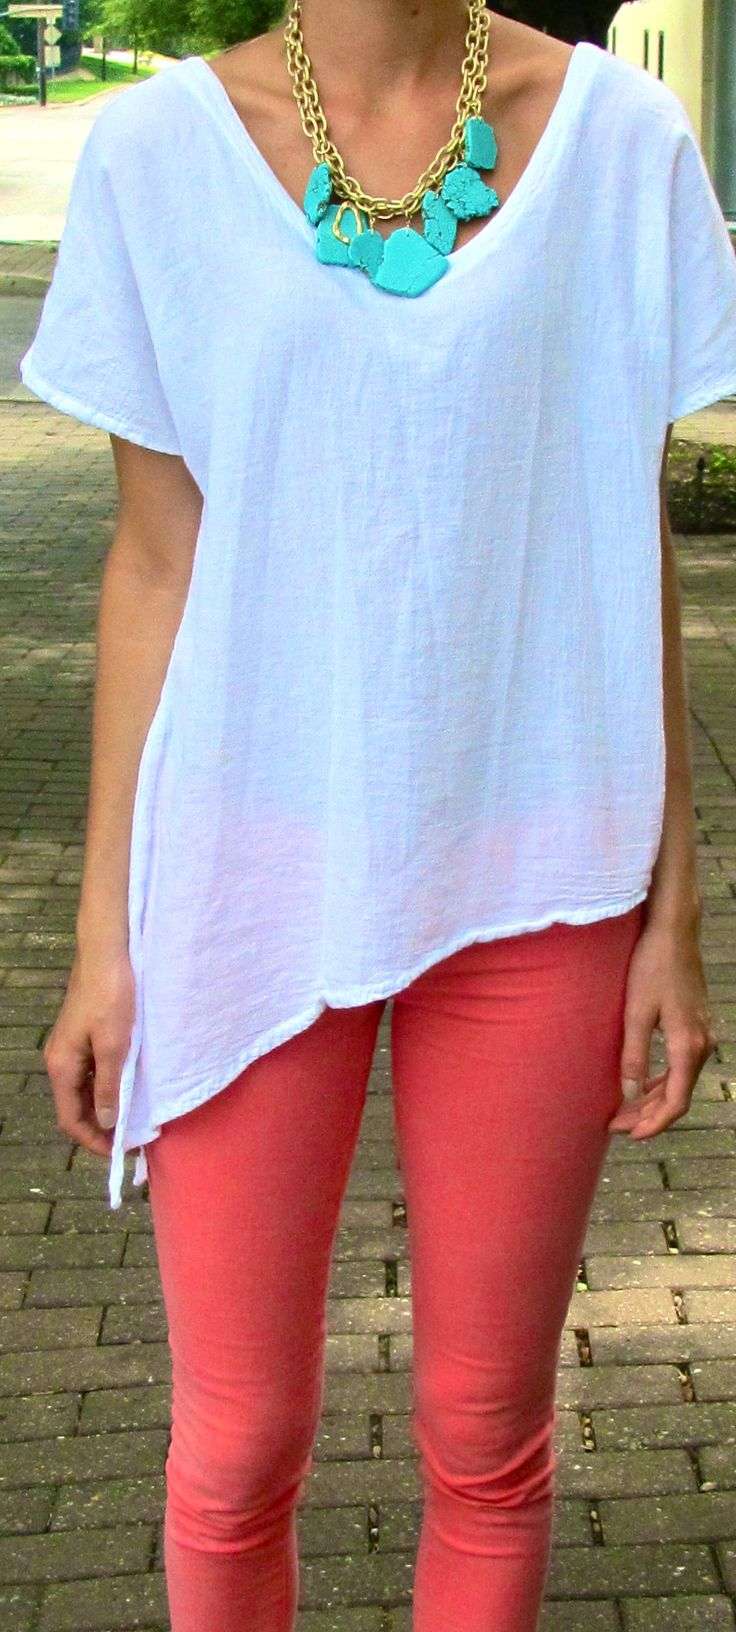 : Coral Jeans, Colors Combos, Outfits, Coral Pants, Turquoi Necklaces, Statement Necklaces, White Shirts, Turquoise Necklace, Summer Colors